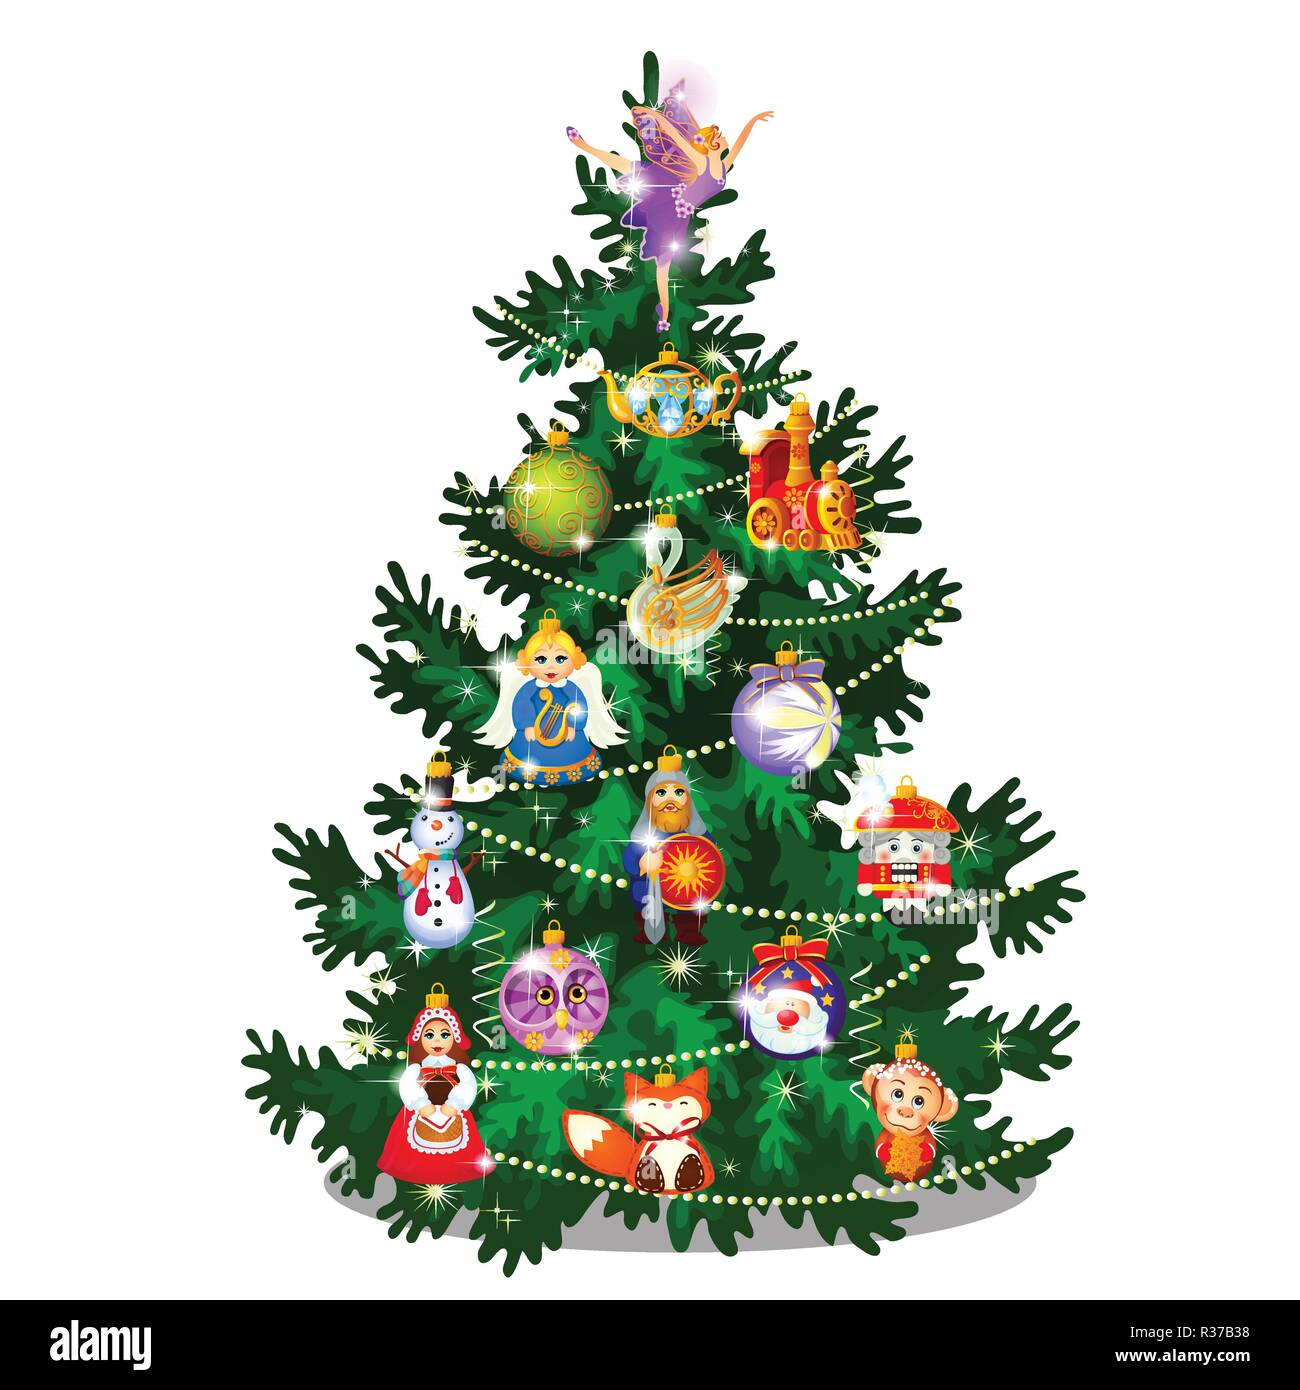 Illustration Christmas Tree Angel High Resolution Stock Photography And Images Alamy Polish your personal project or design with these cartoon christmas tree transparent png images, make it even more personalized and more attractive. https www alamy com sketch with cute christmas tree new year gifts classic christmas decorations and baubles sample of poster invitation and other card vector cartoon close up illustration image225741132 html